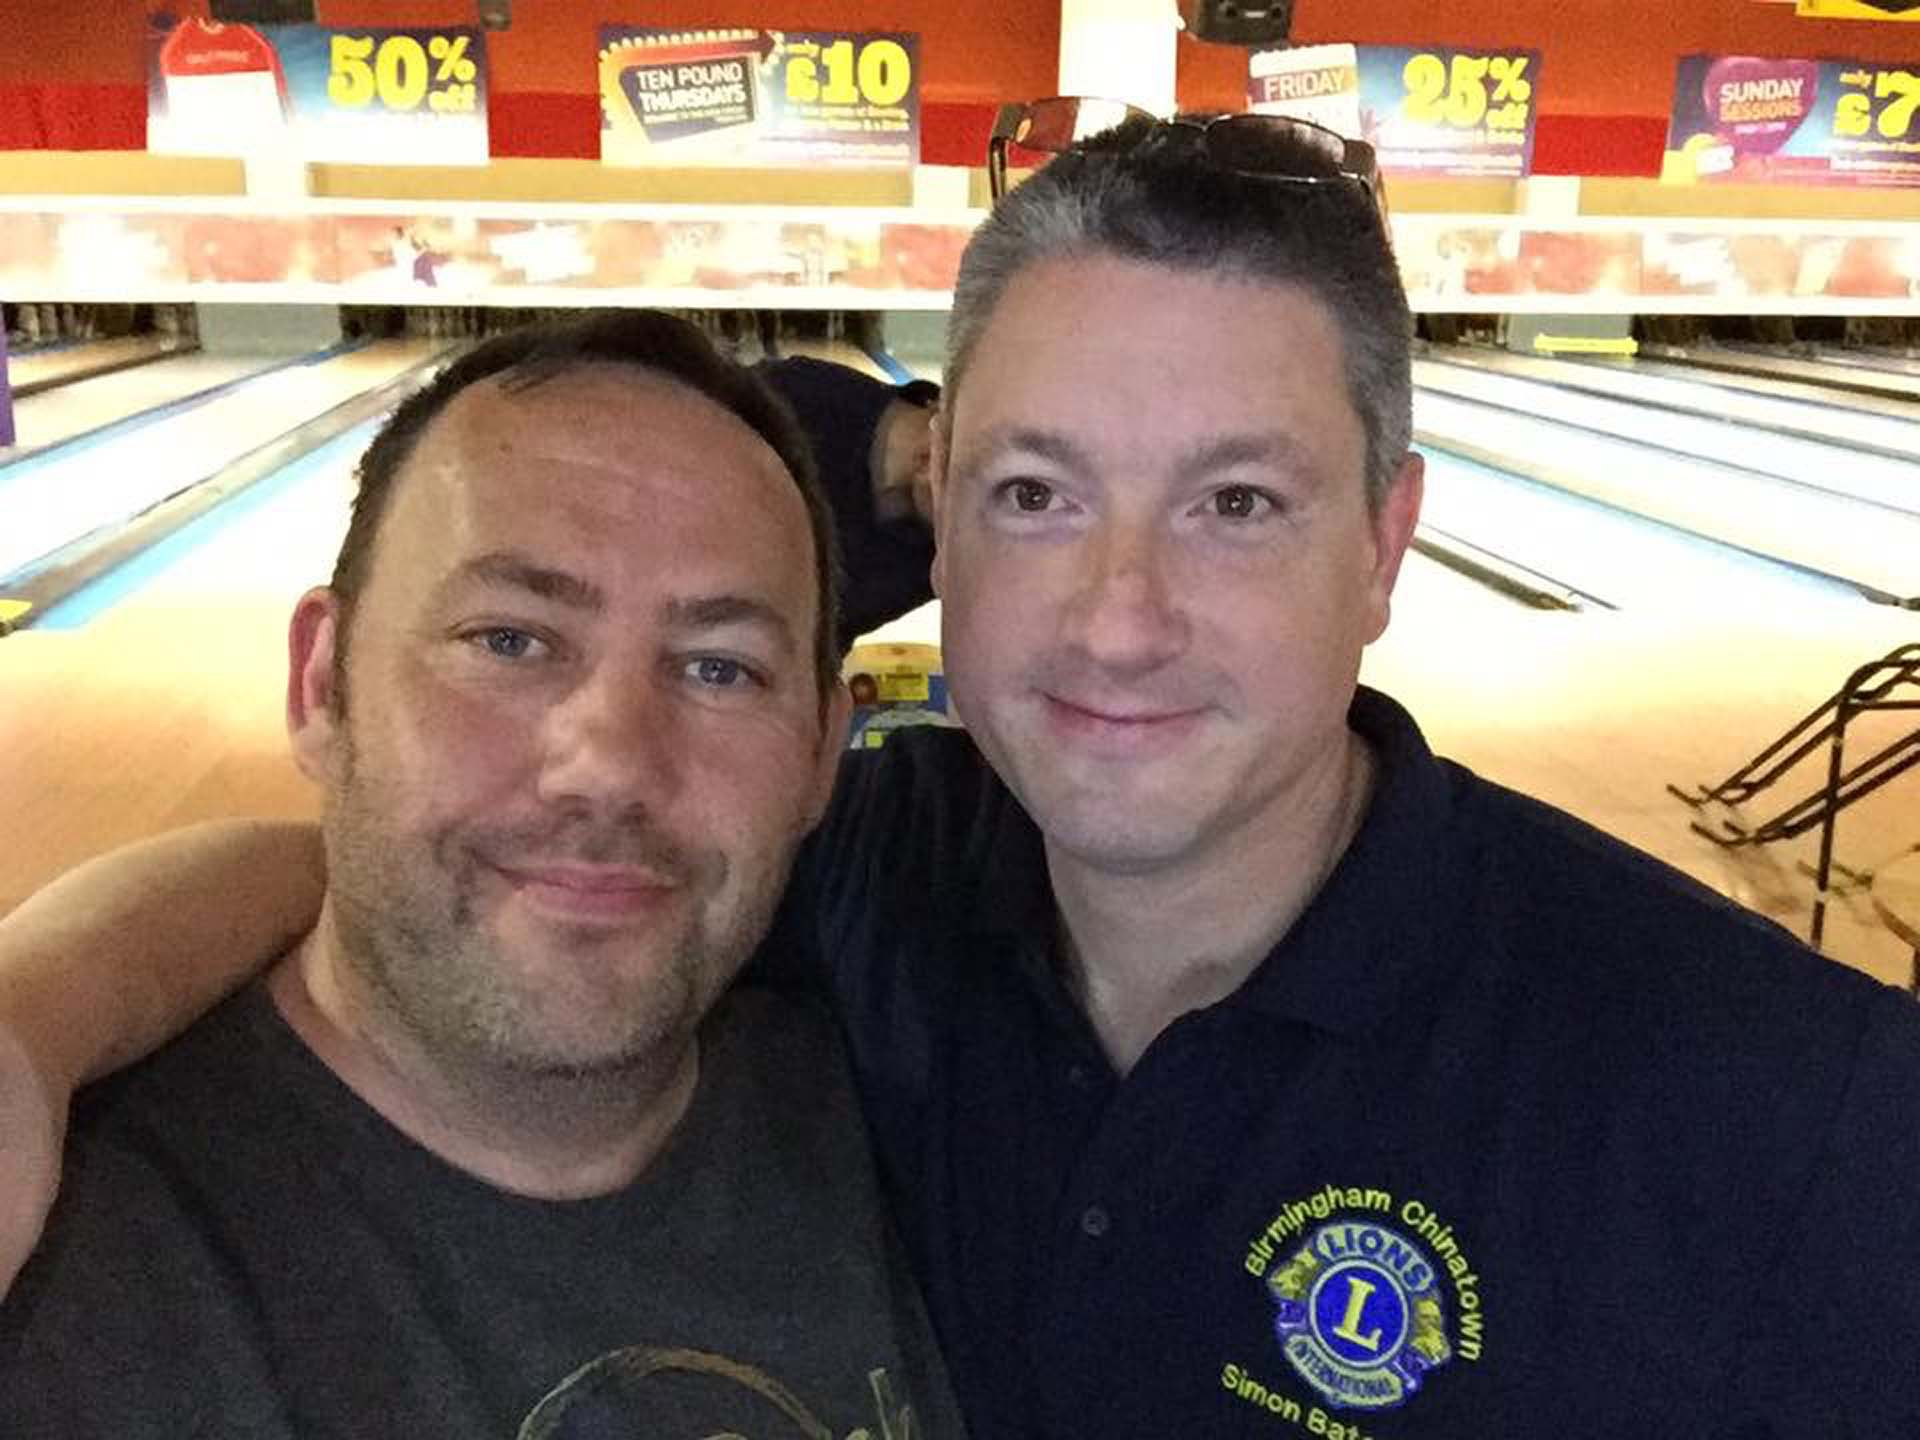 Phil and Simon Lions Ten Pin Bowling